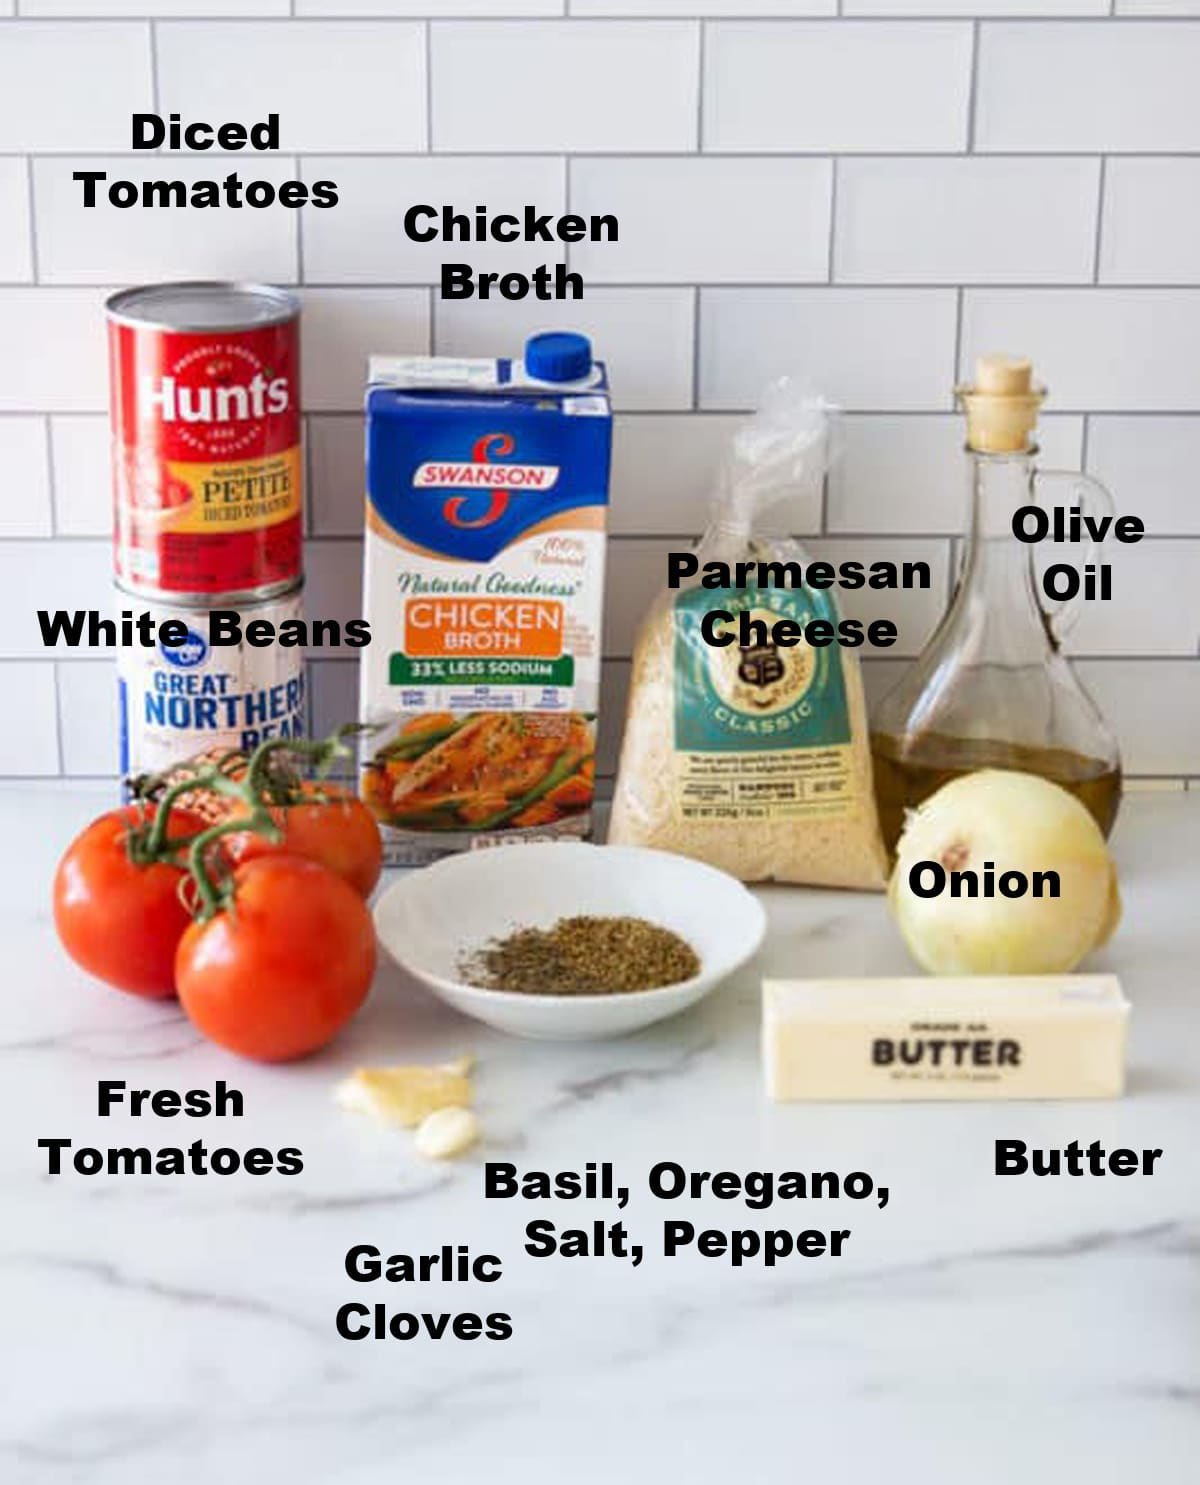 Tomatoes, can of white beans, can of diced potato, chicken broth, Parmesan cheese, herbs, onions, butter, and olive oil on white counter.